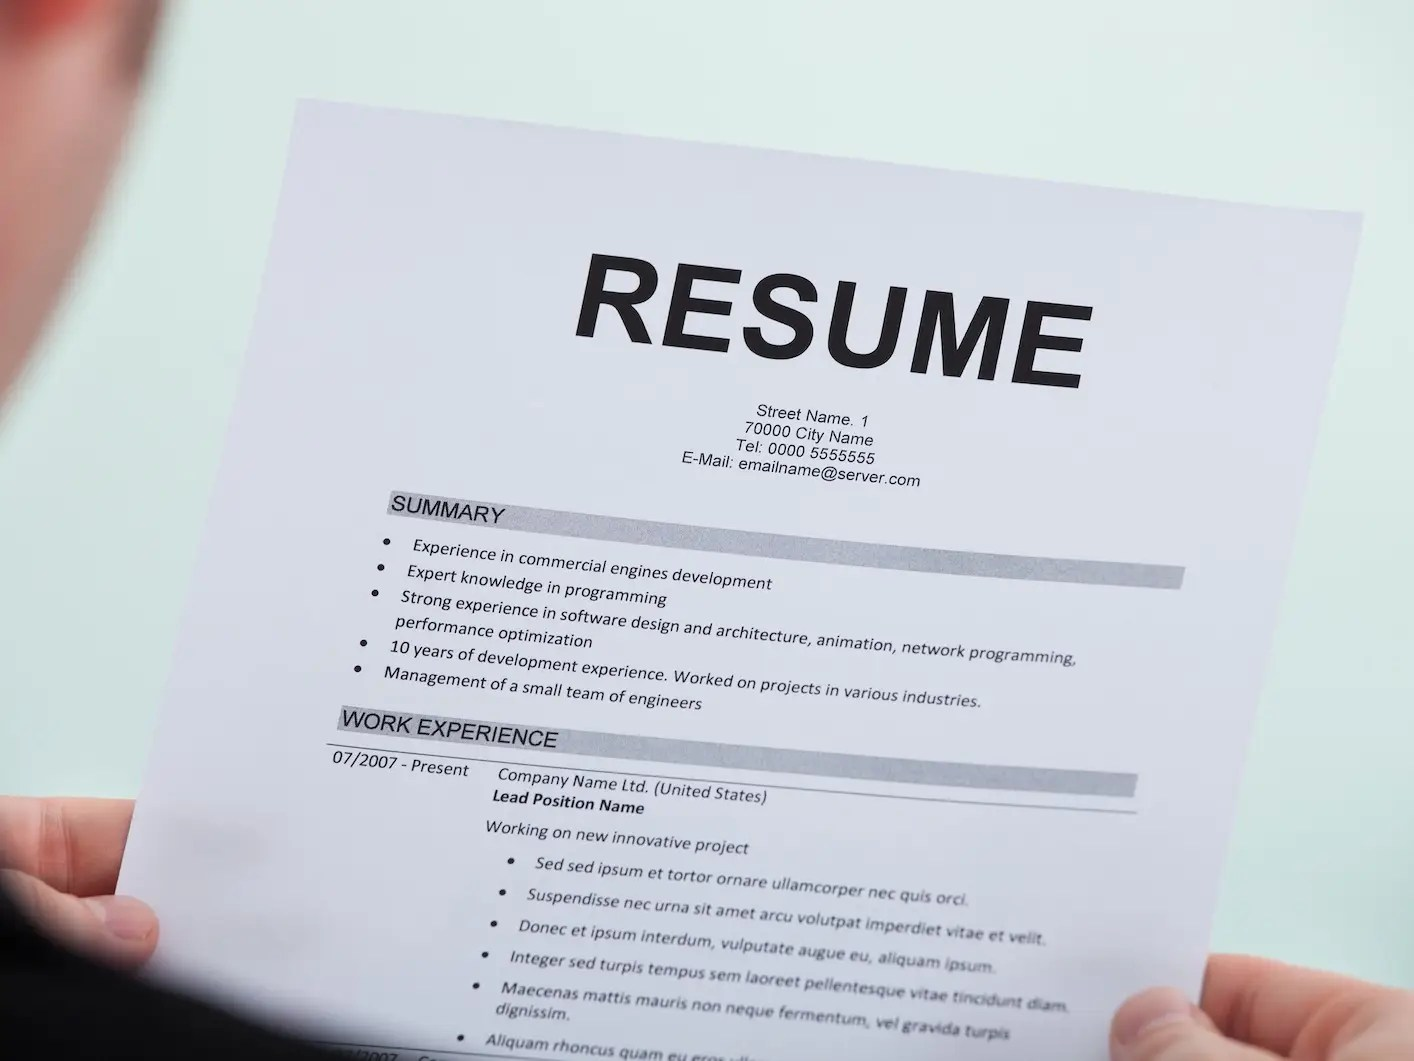 resume copies resume for proofreading job online editing and